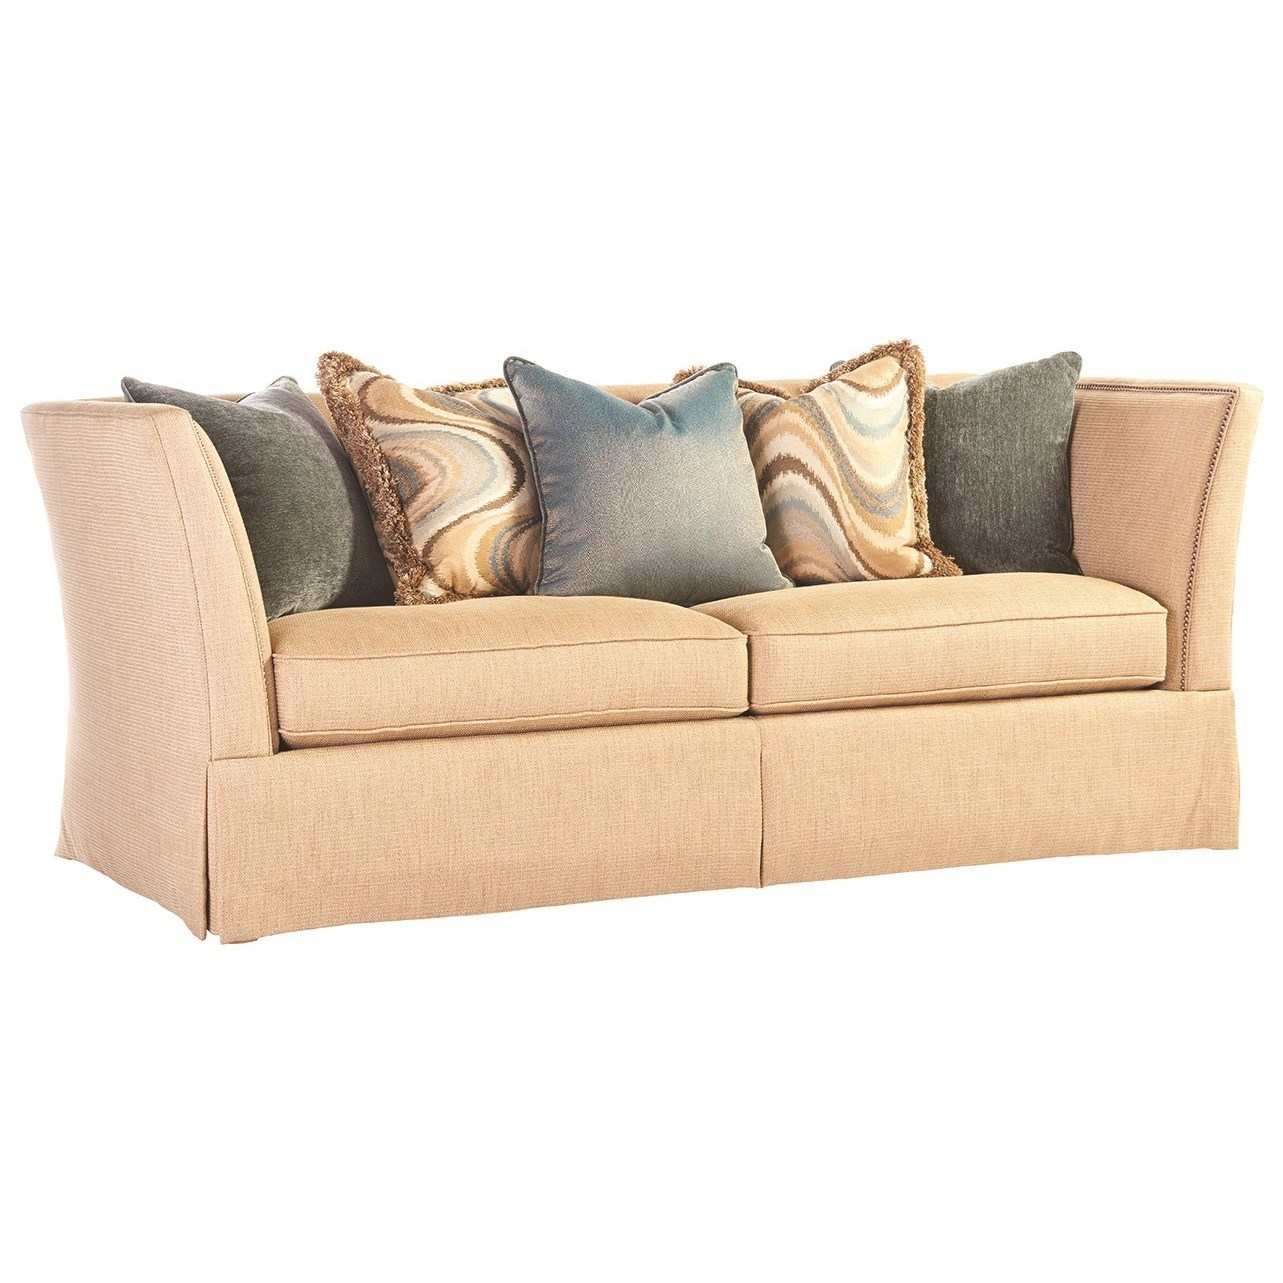 Upholstery Hadley Sofa by Lexington at Baer's Furniture